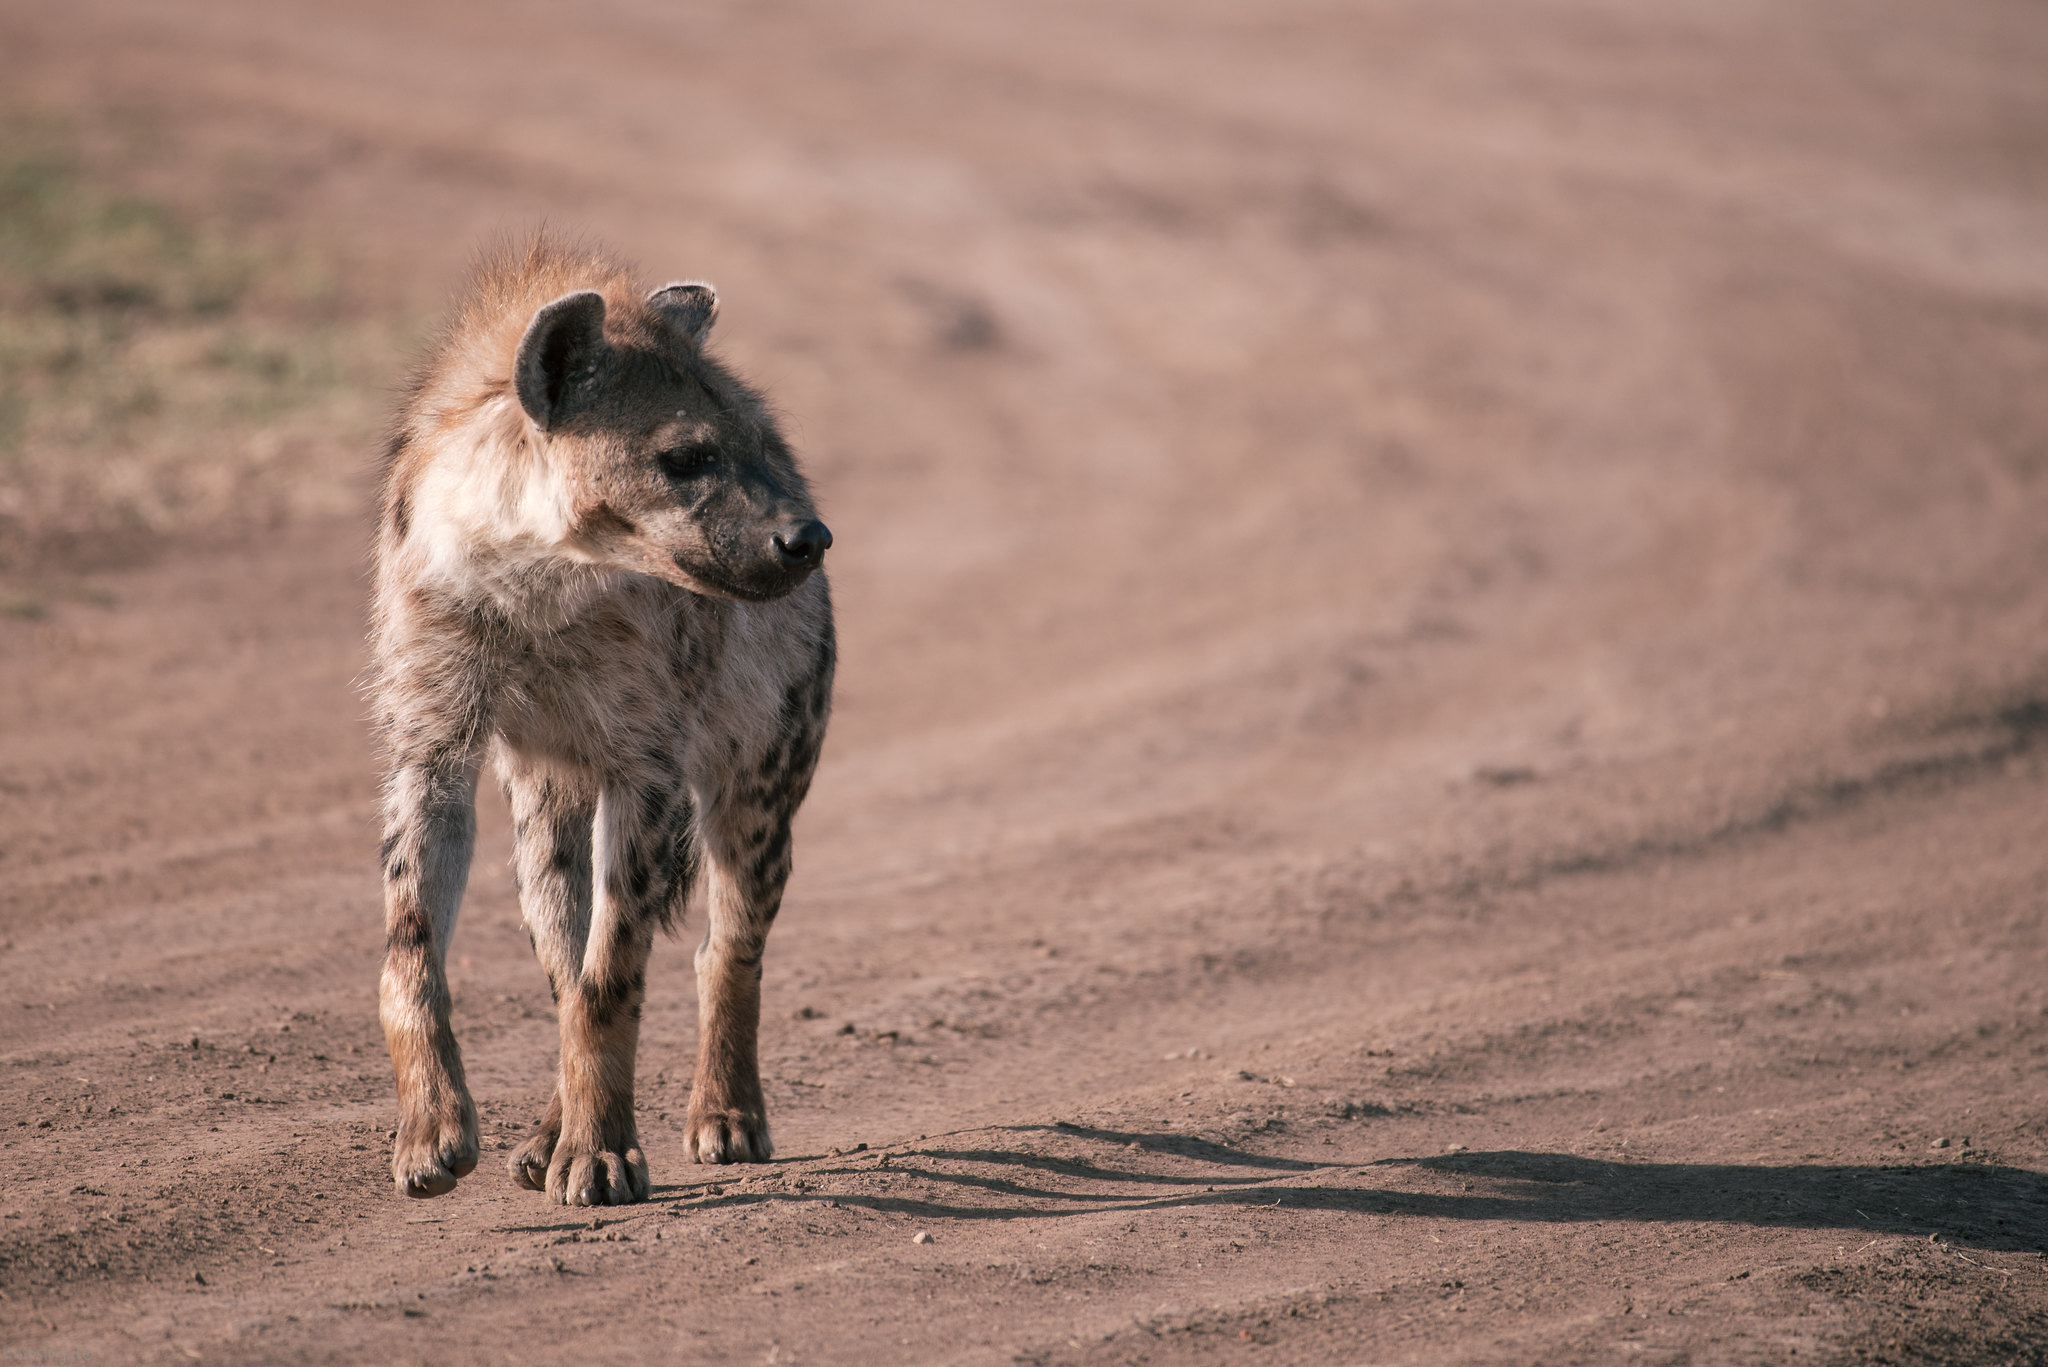 Lonely hyena walking up the road